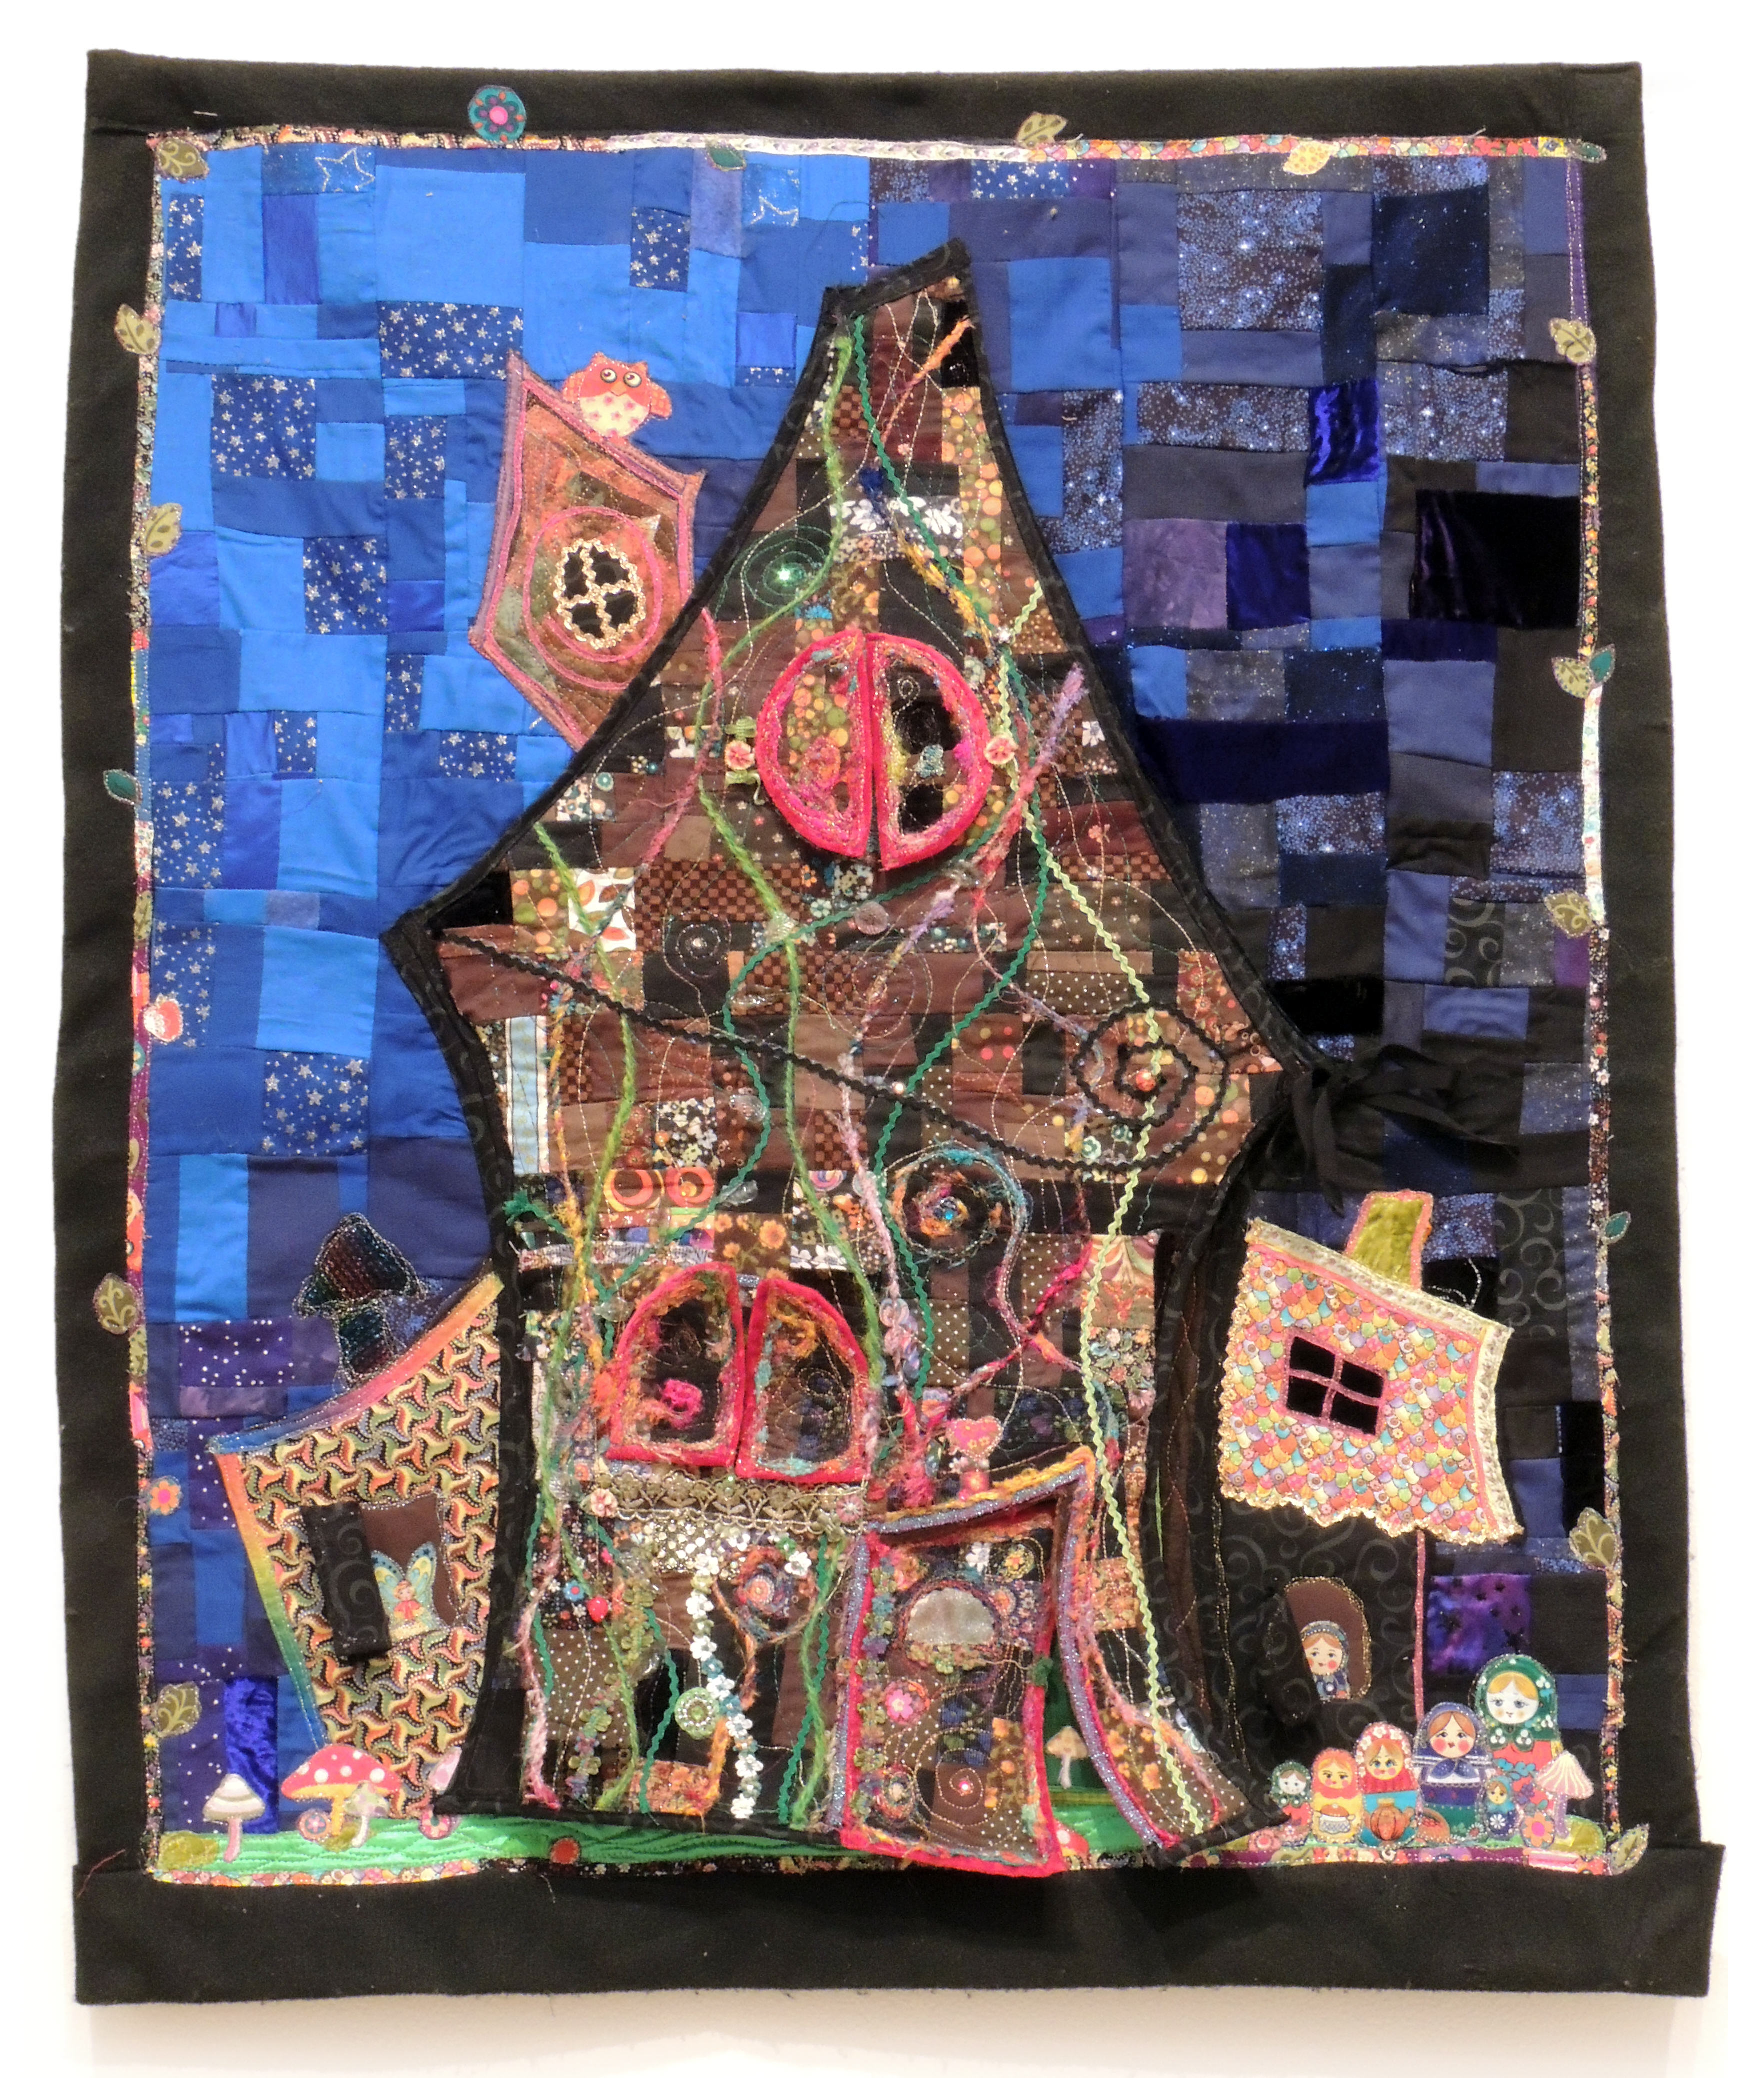 Sharri Paula Phillips | PATCHWORK HOUSE | fabric, mixed media | 2010 | variable dimensions | From the collection of Jeremy Holt and Amy Magnus